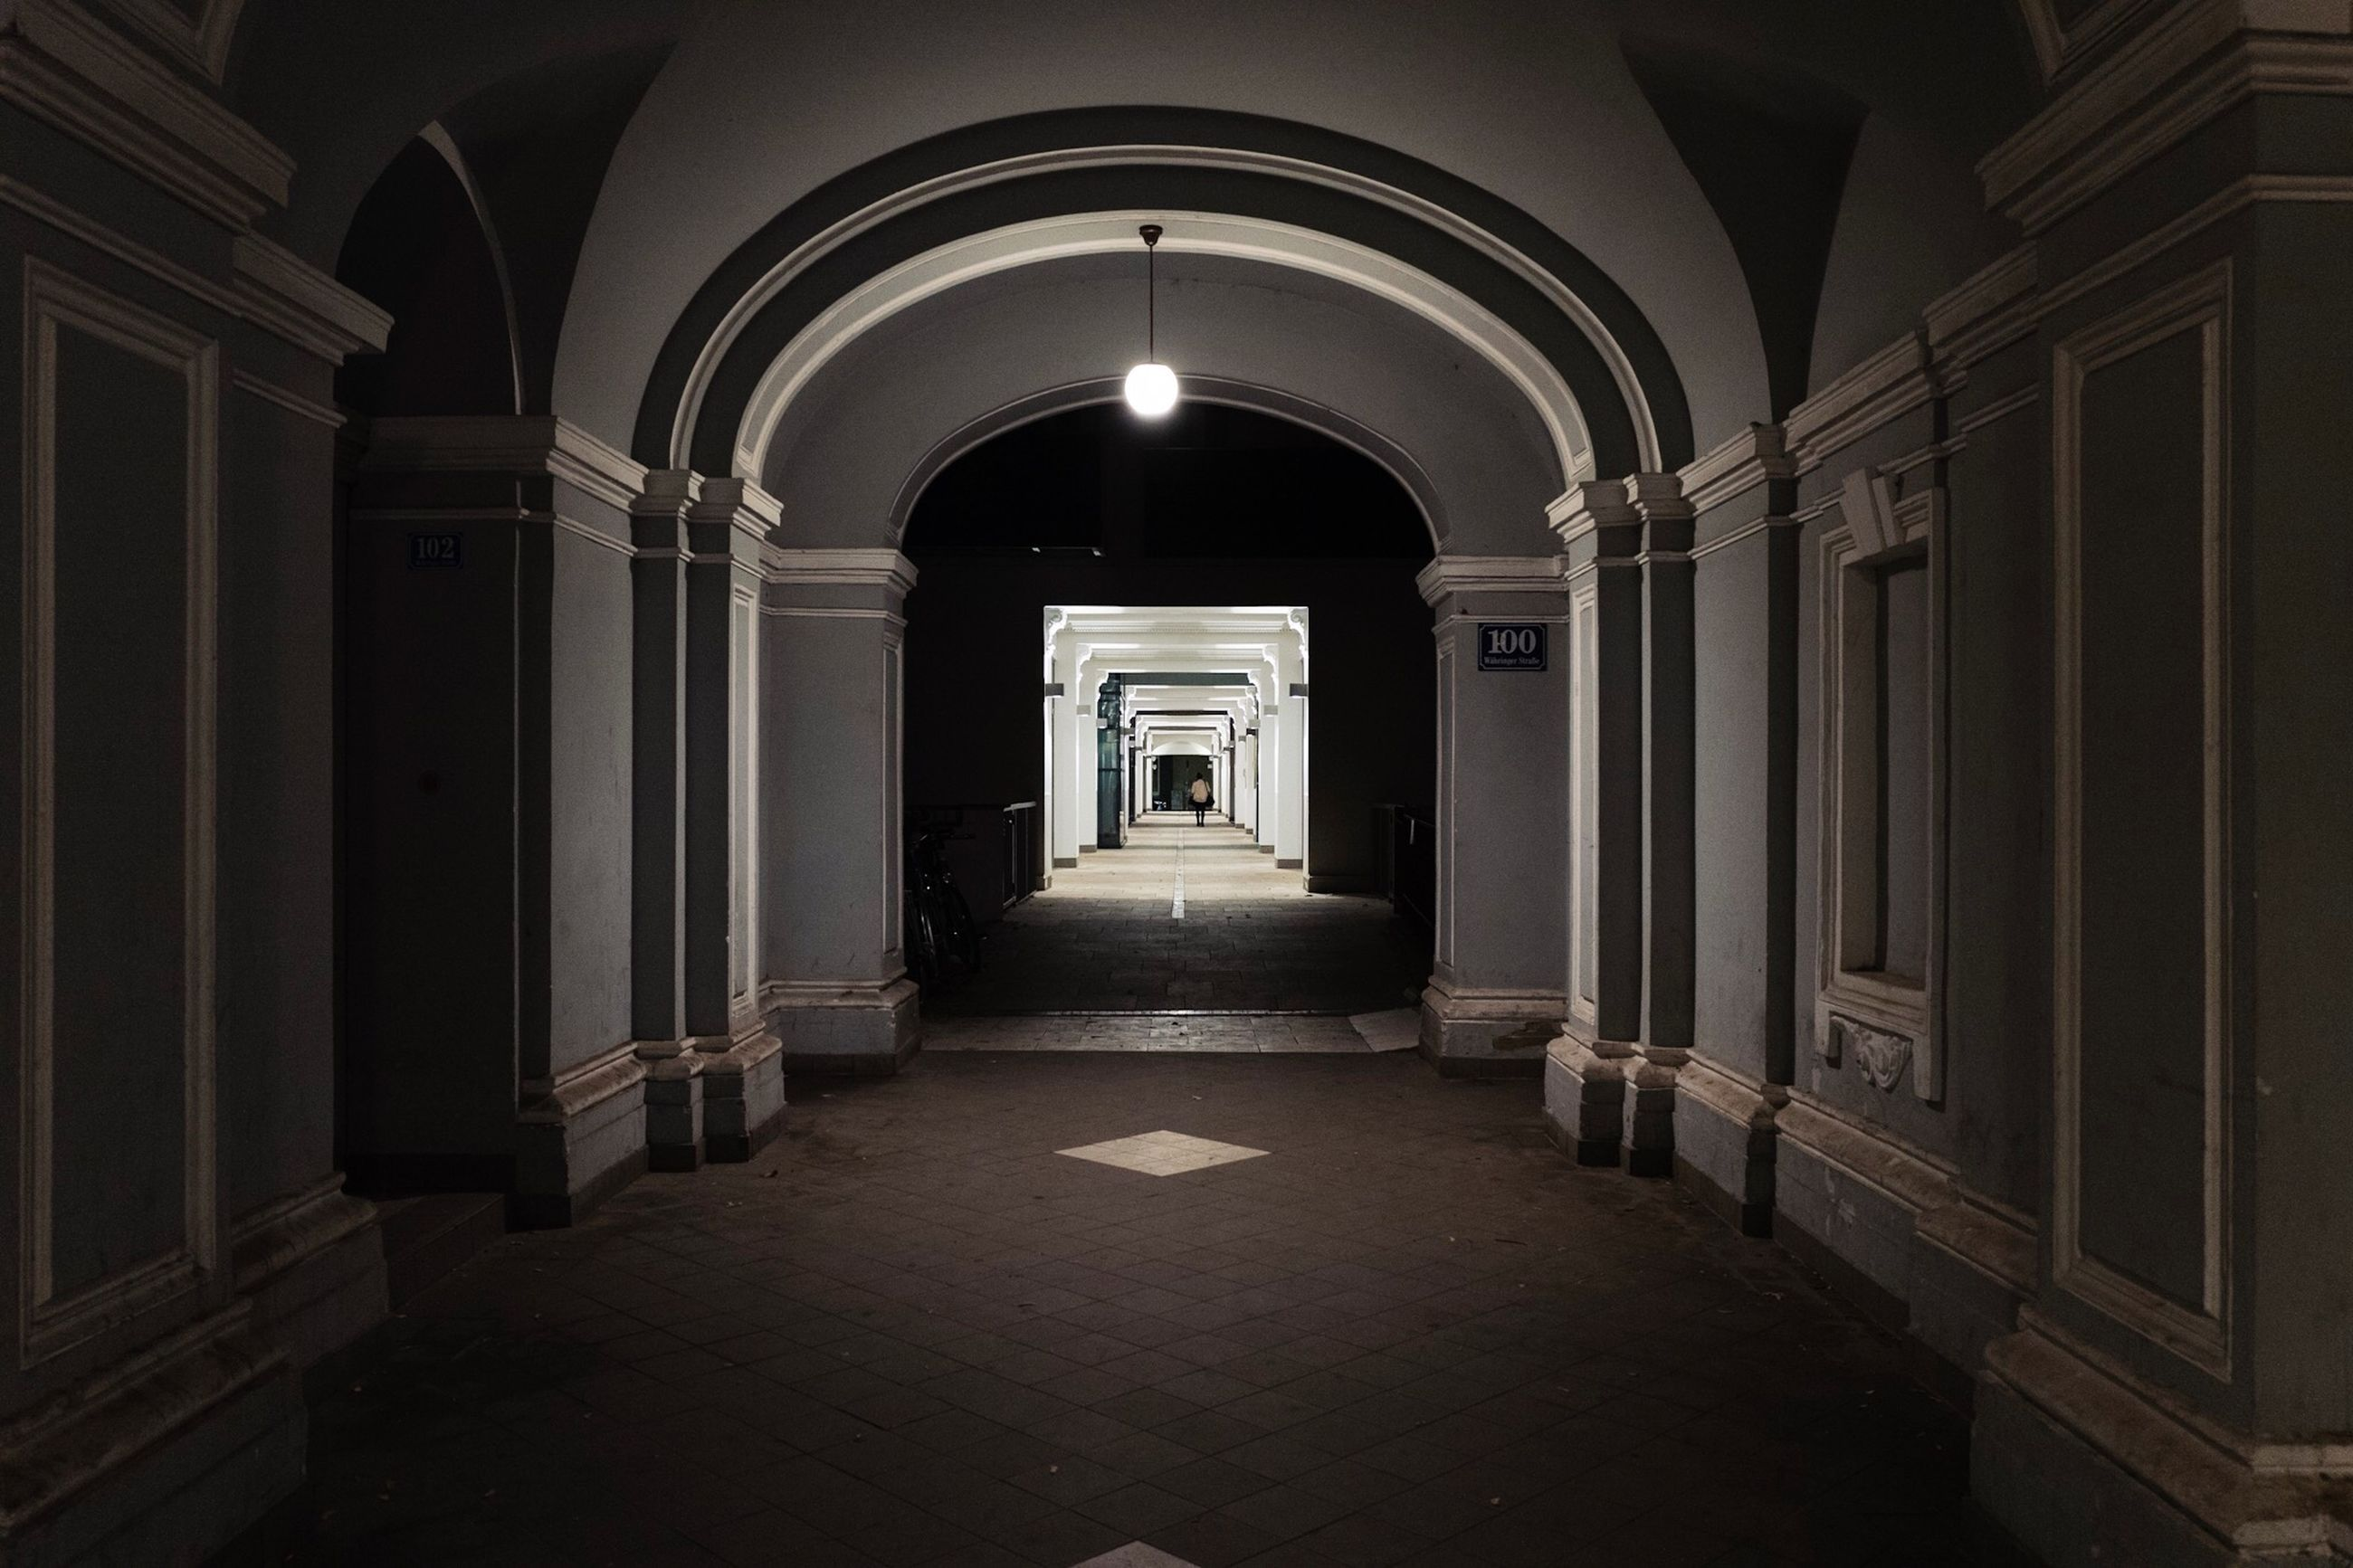 architecture, arch, building, built structure, the way forward, direction, arcade, indoors, door, no people, entrance, corridor, empty, absence, diminishing perspective, illuminated, lighting equipment, the past, history, day, ceiling, architectural column, long, aisle, arched